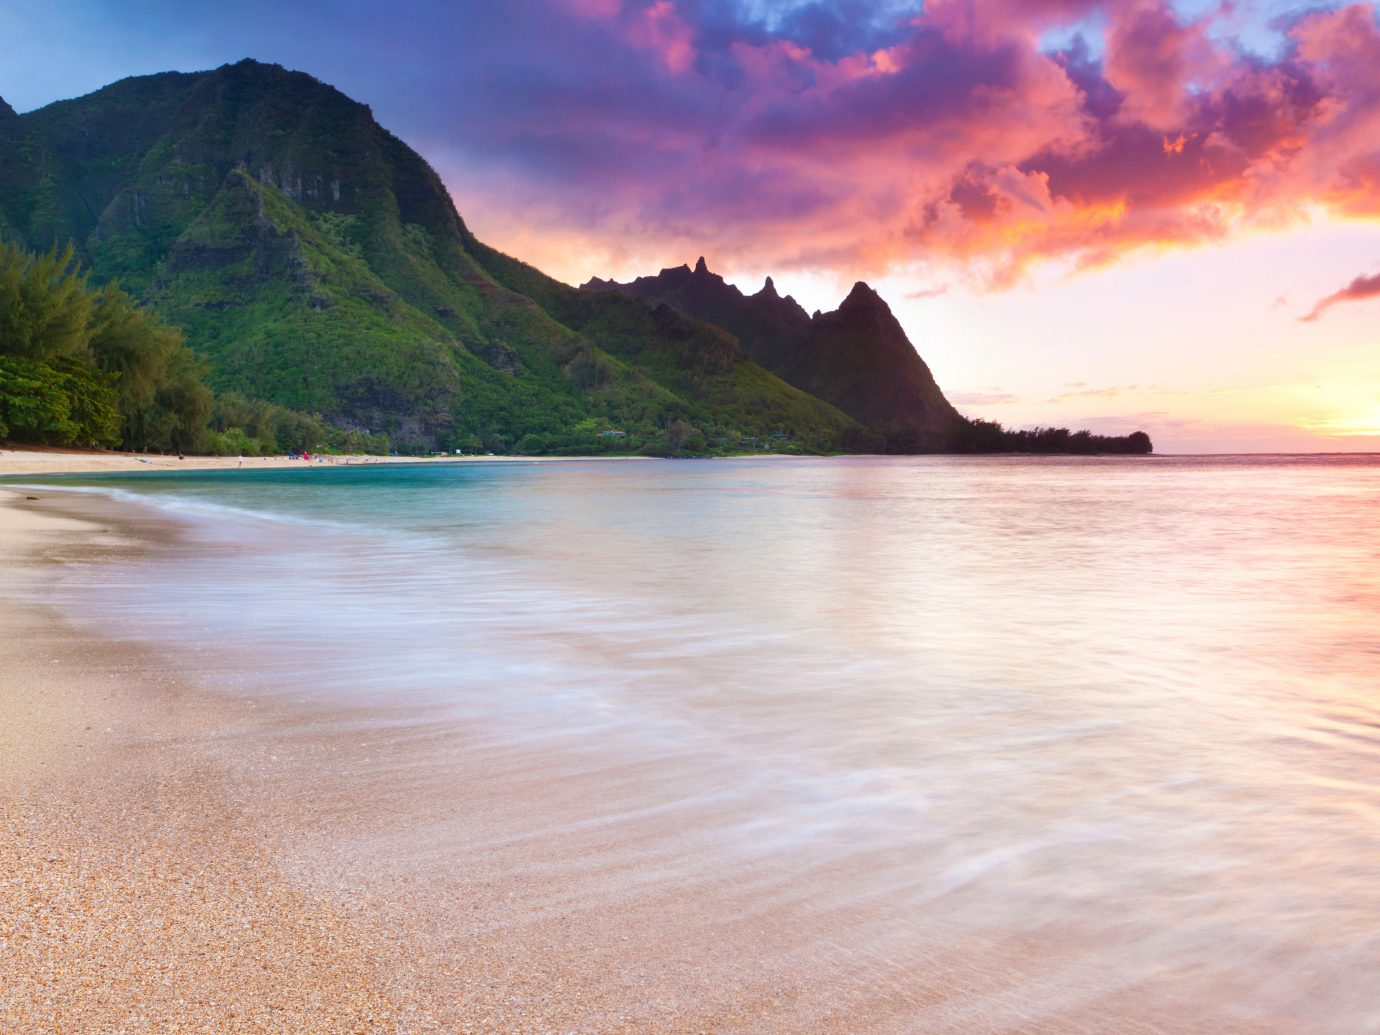 Beach Natural wonders Nature Ocean Offbeat Outdoors Scenic views Sunset outdoor water mountain shore Sea Coast body of water horizon cloud morning bay sunrise dawn reflection dusk loch wave sand terrain Lake distance highland